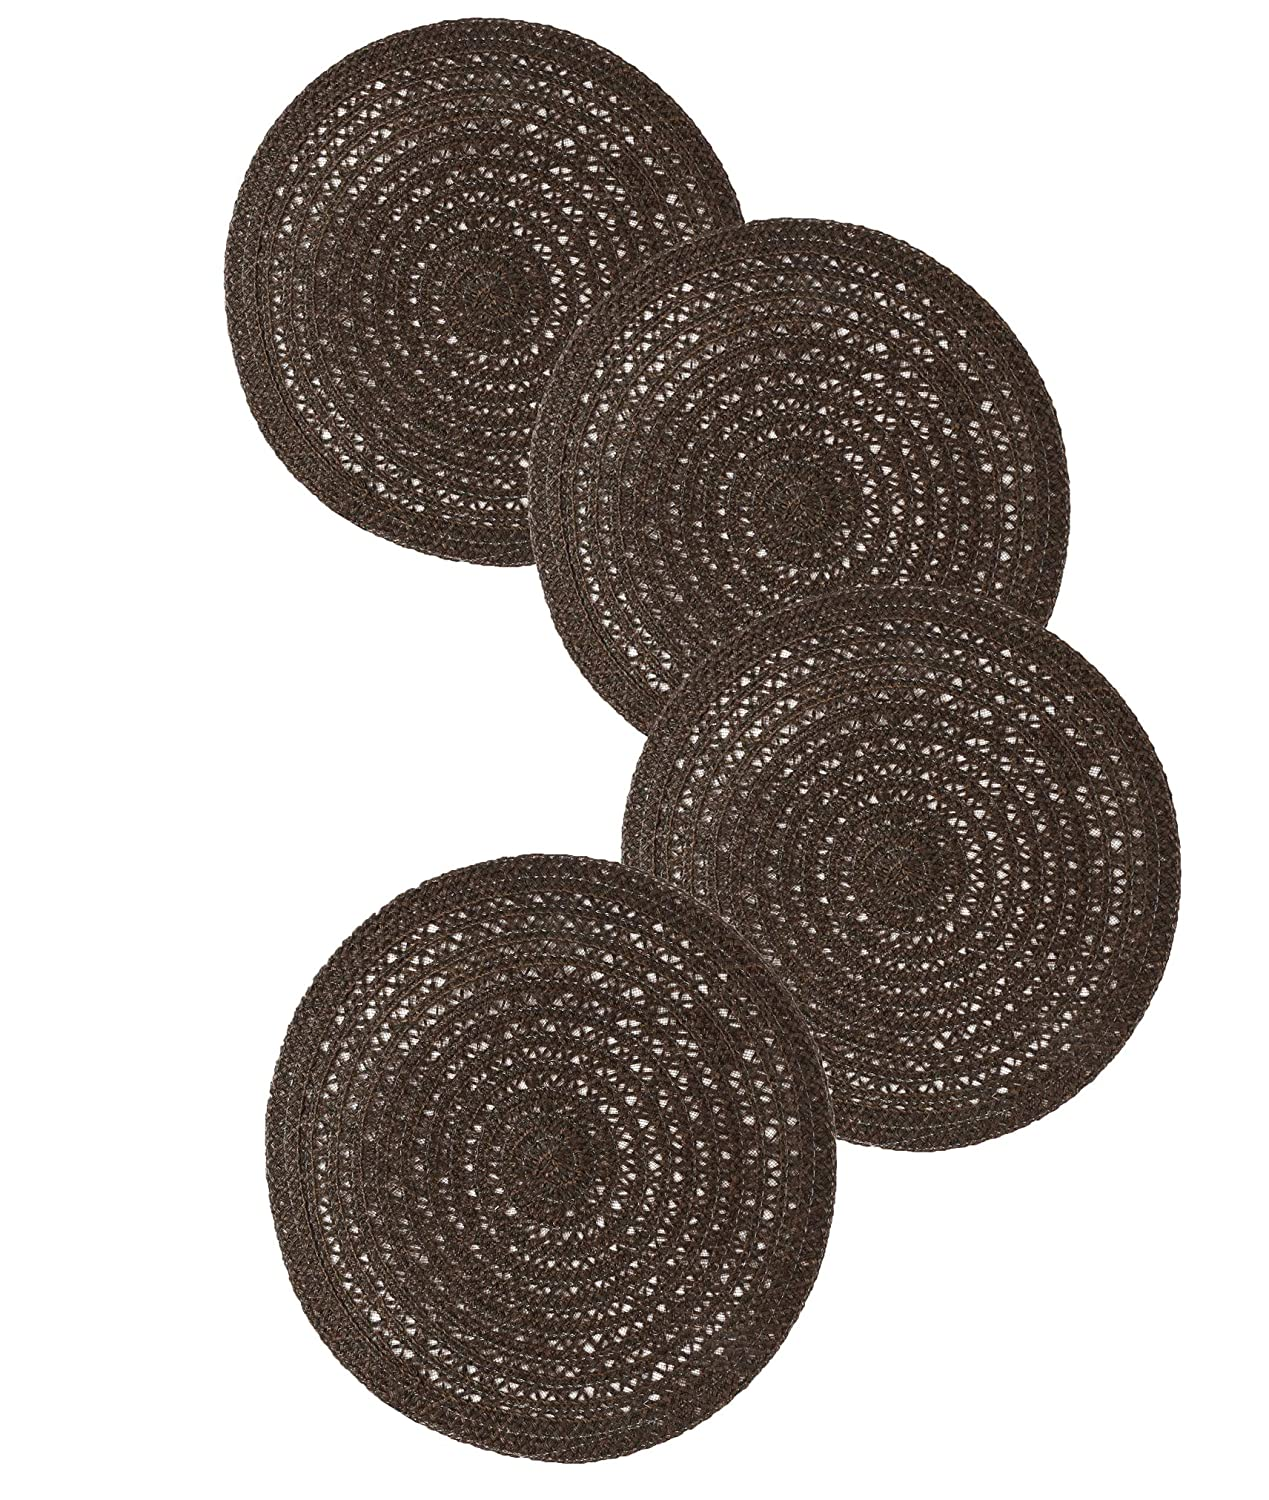 Famibay Placemats Round Placemats Set of 4 Woven Non Slip Place Mats Hemp Rope Heat Resistant Table Mats (Brown) Fmibay